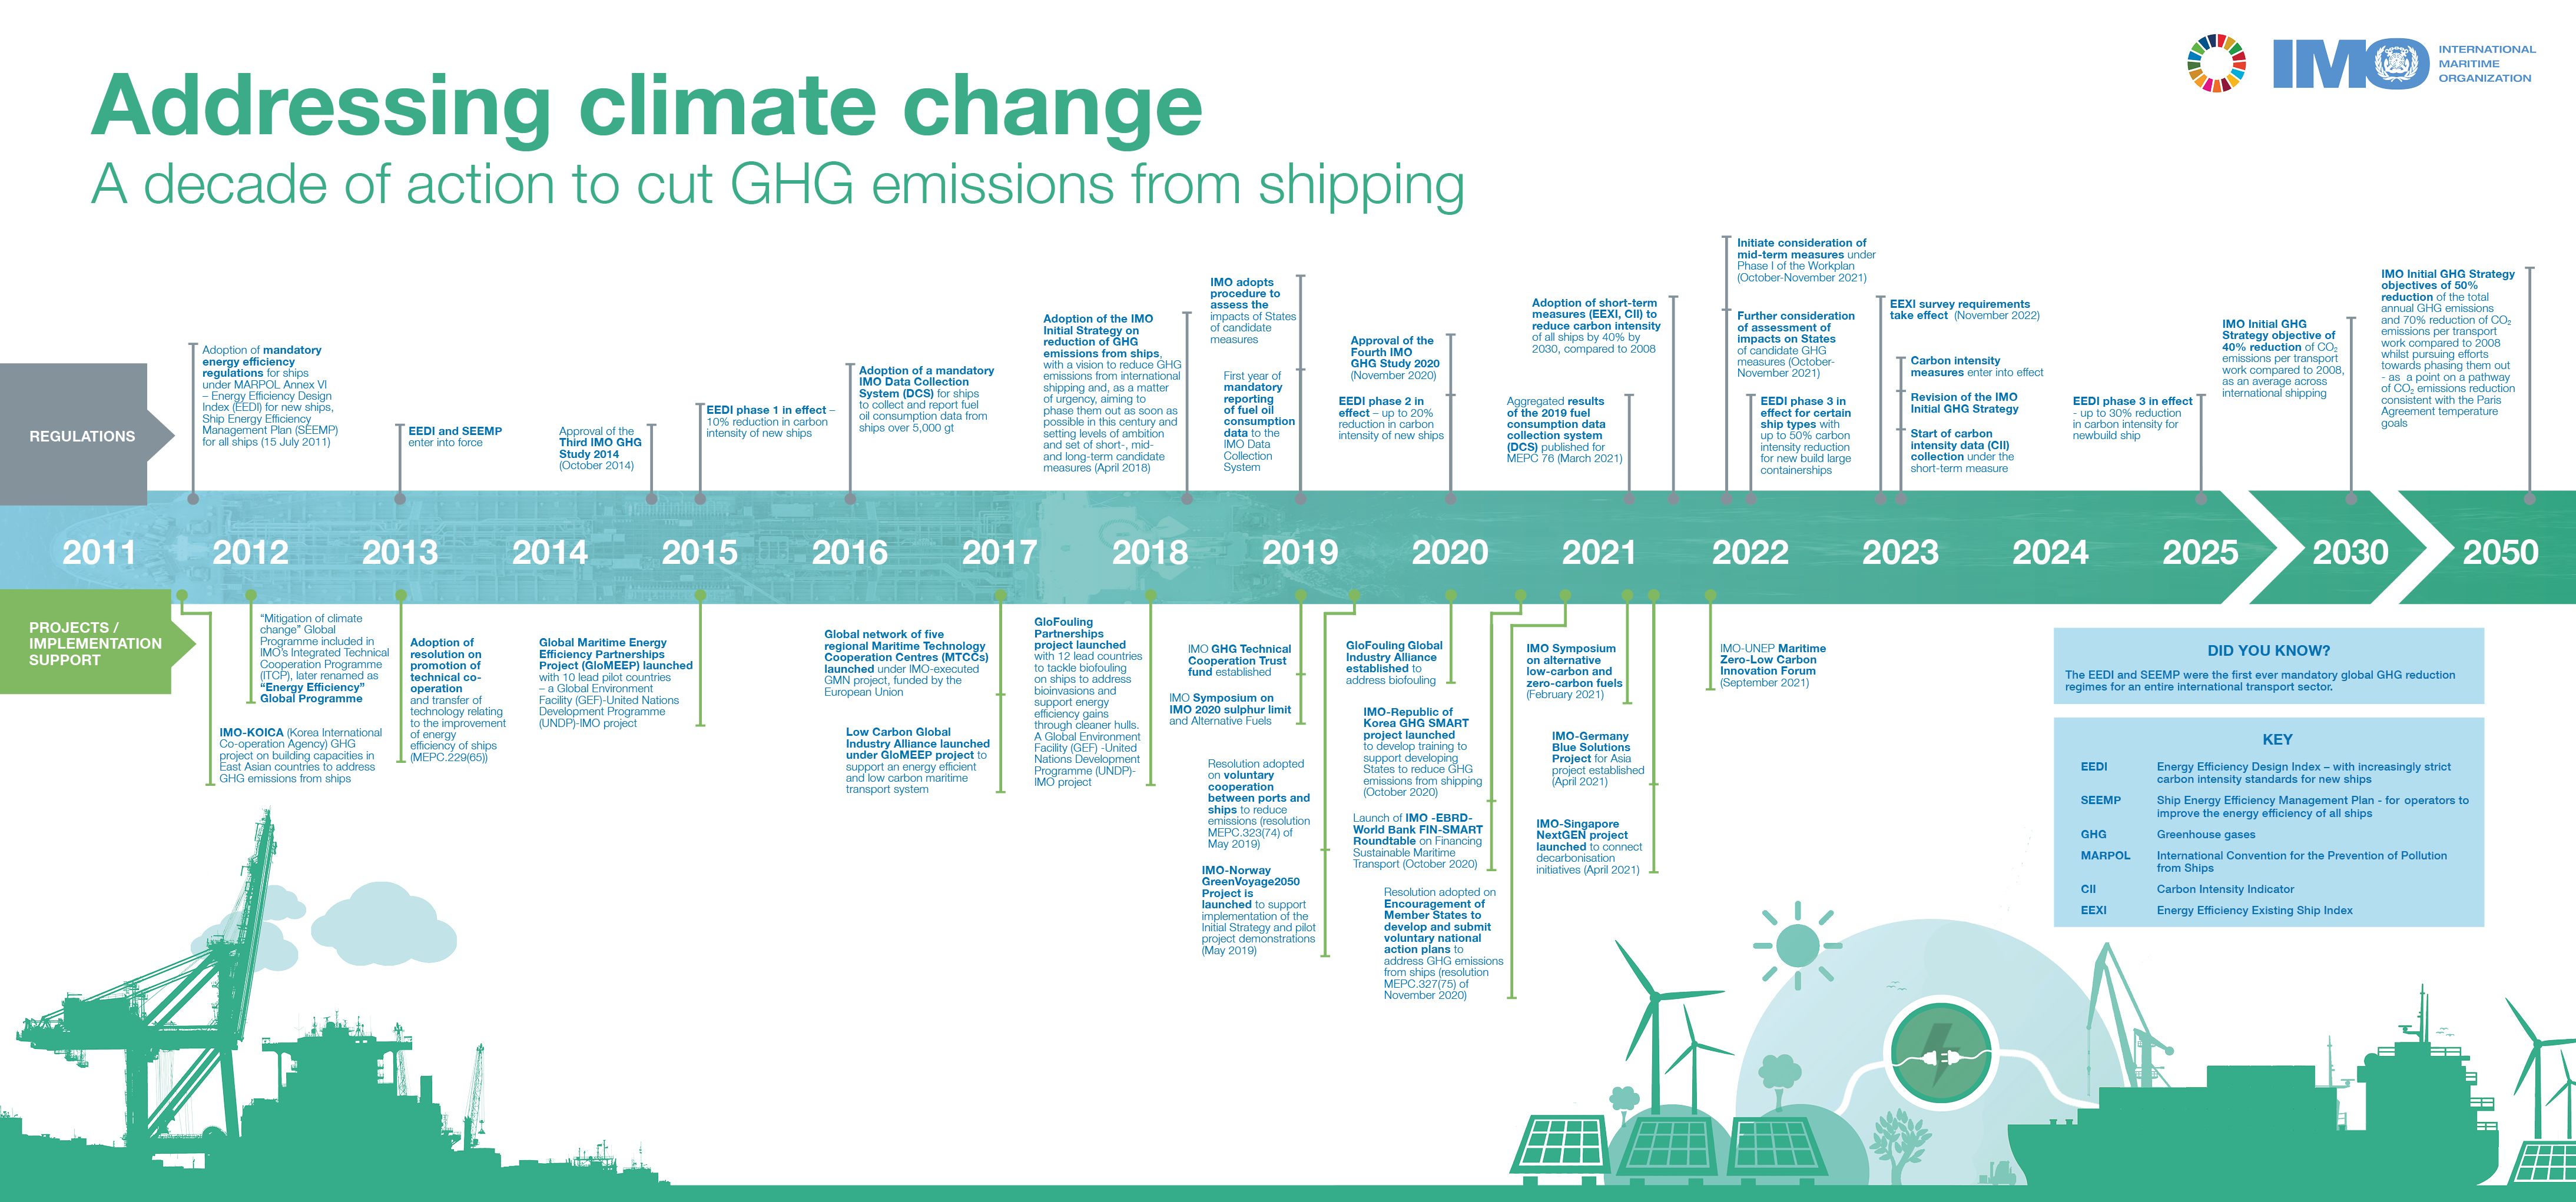 Addressing climate change - a decade of action to cut GHG emissions from shipping_FINAL_(14-07-21)_small.jpg